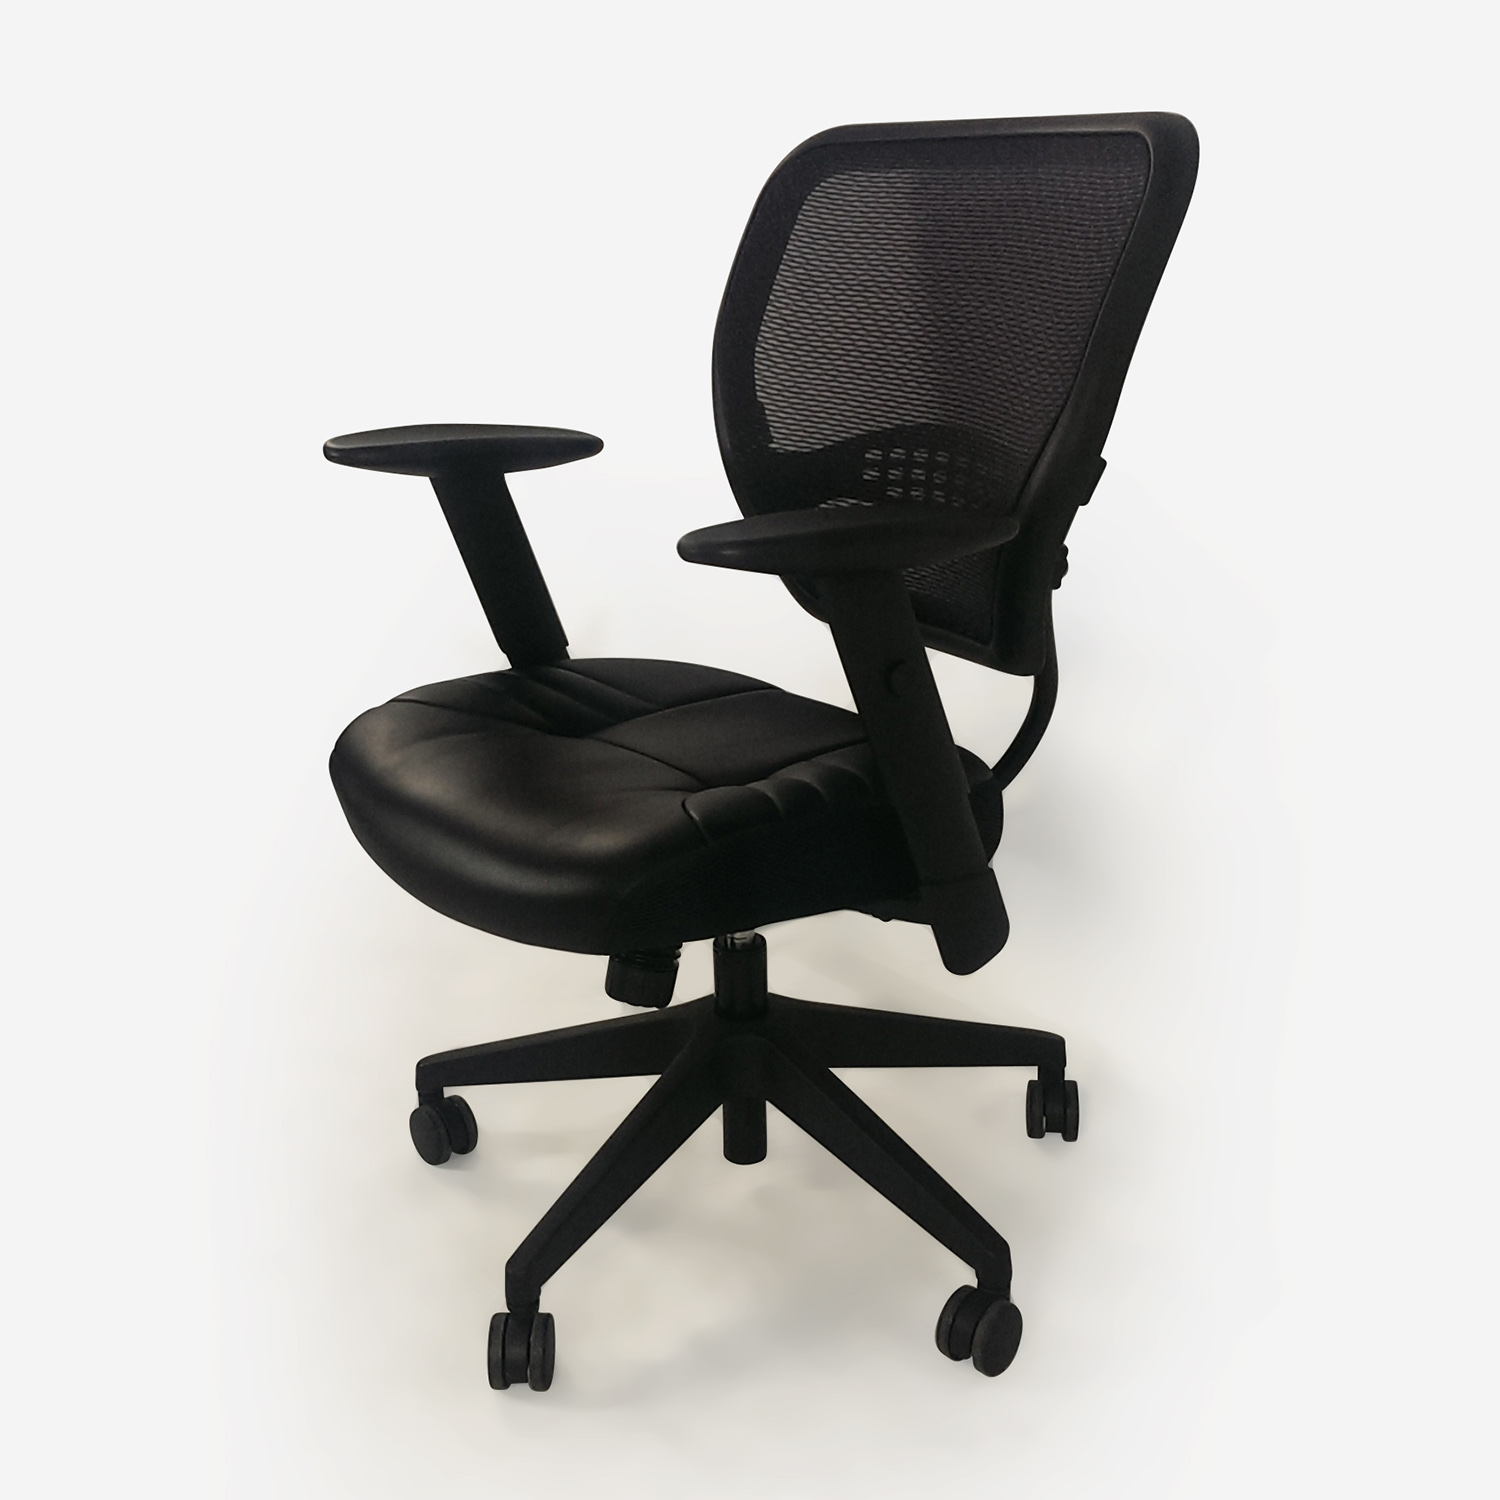 Furniture Chairs Black 67 Off Black Leather Office Chair Chairs